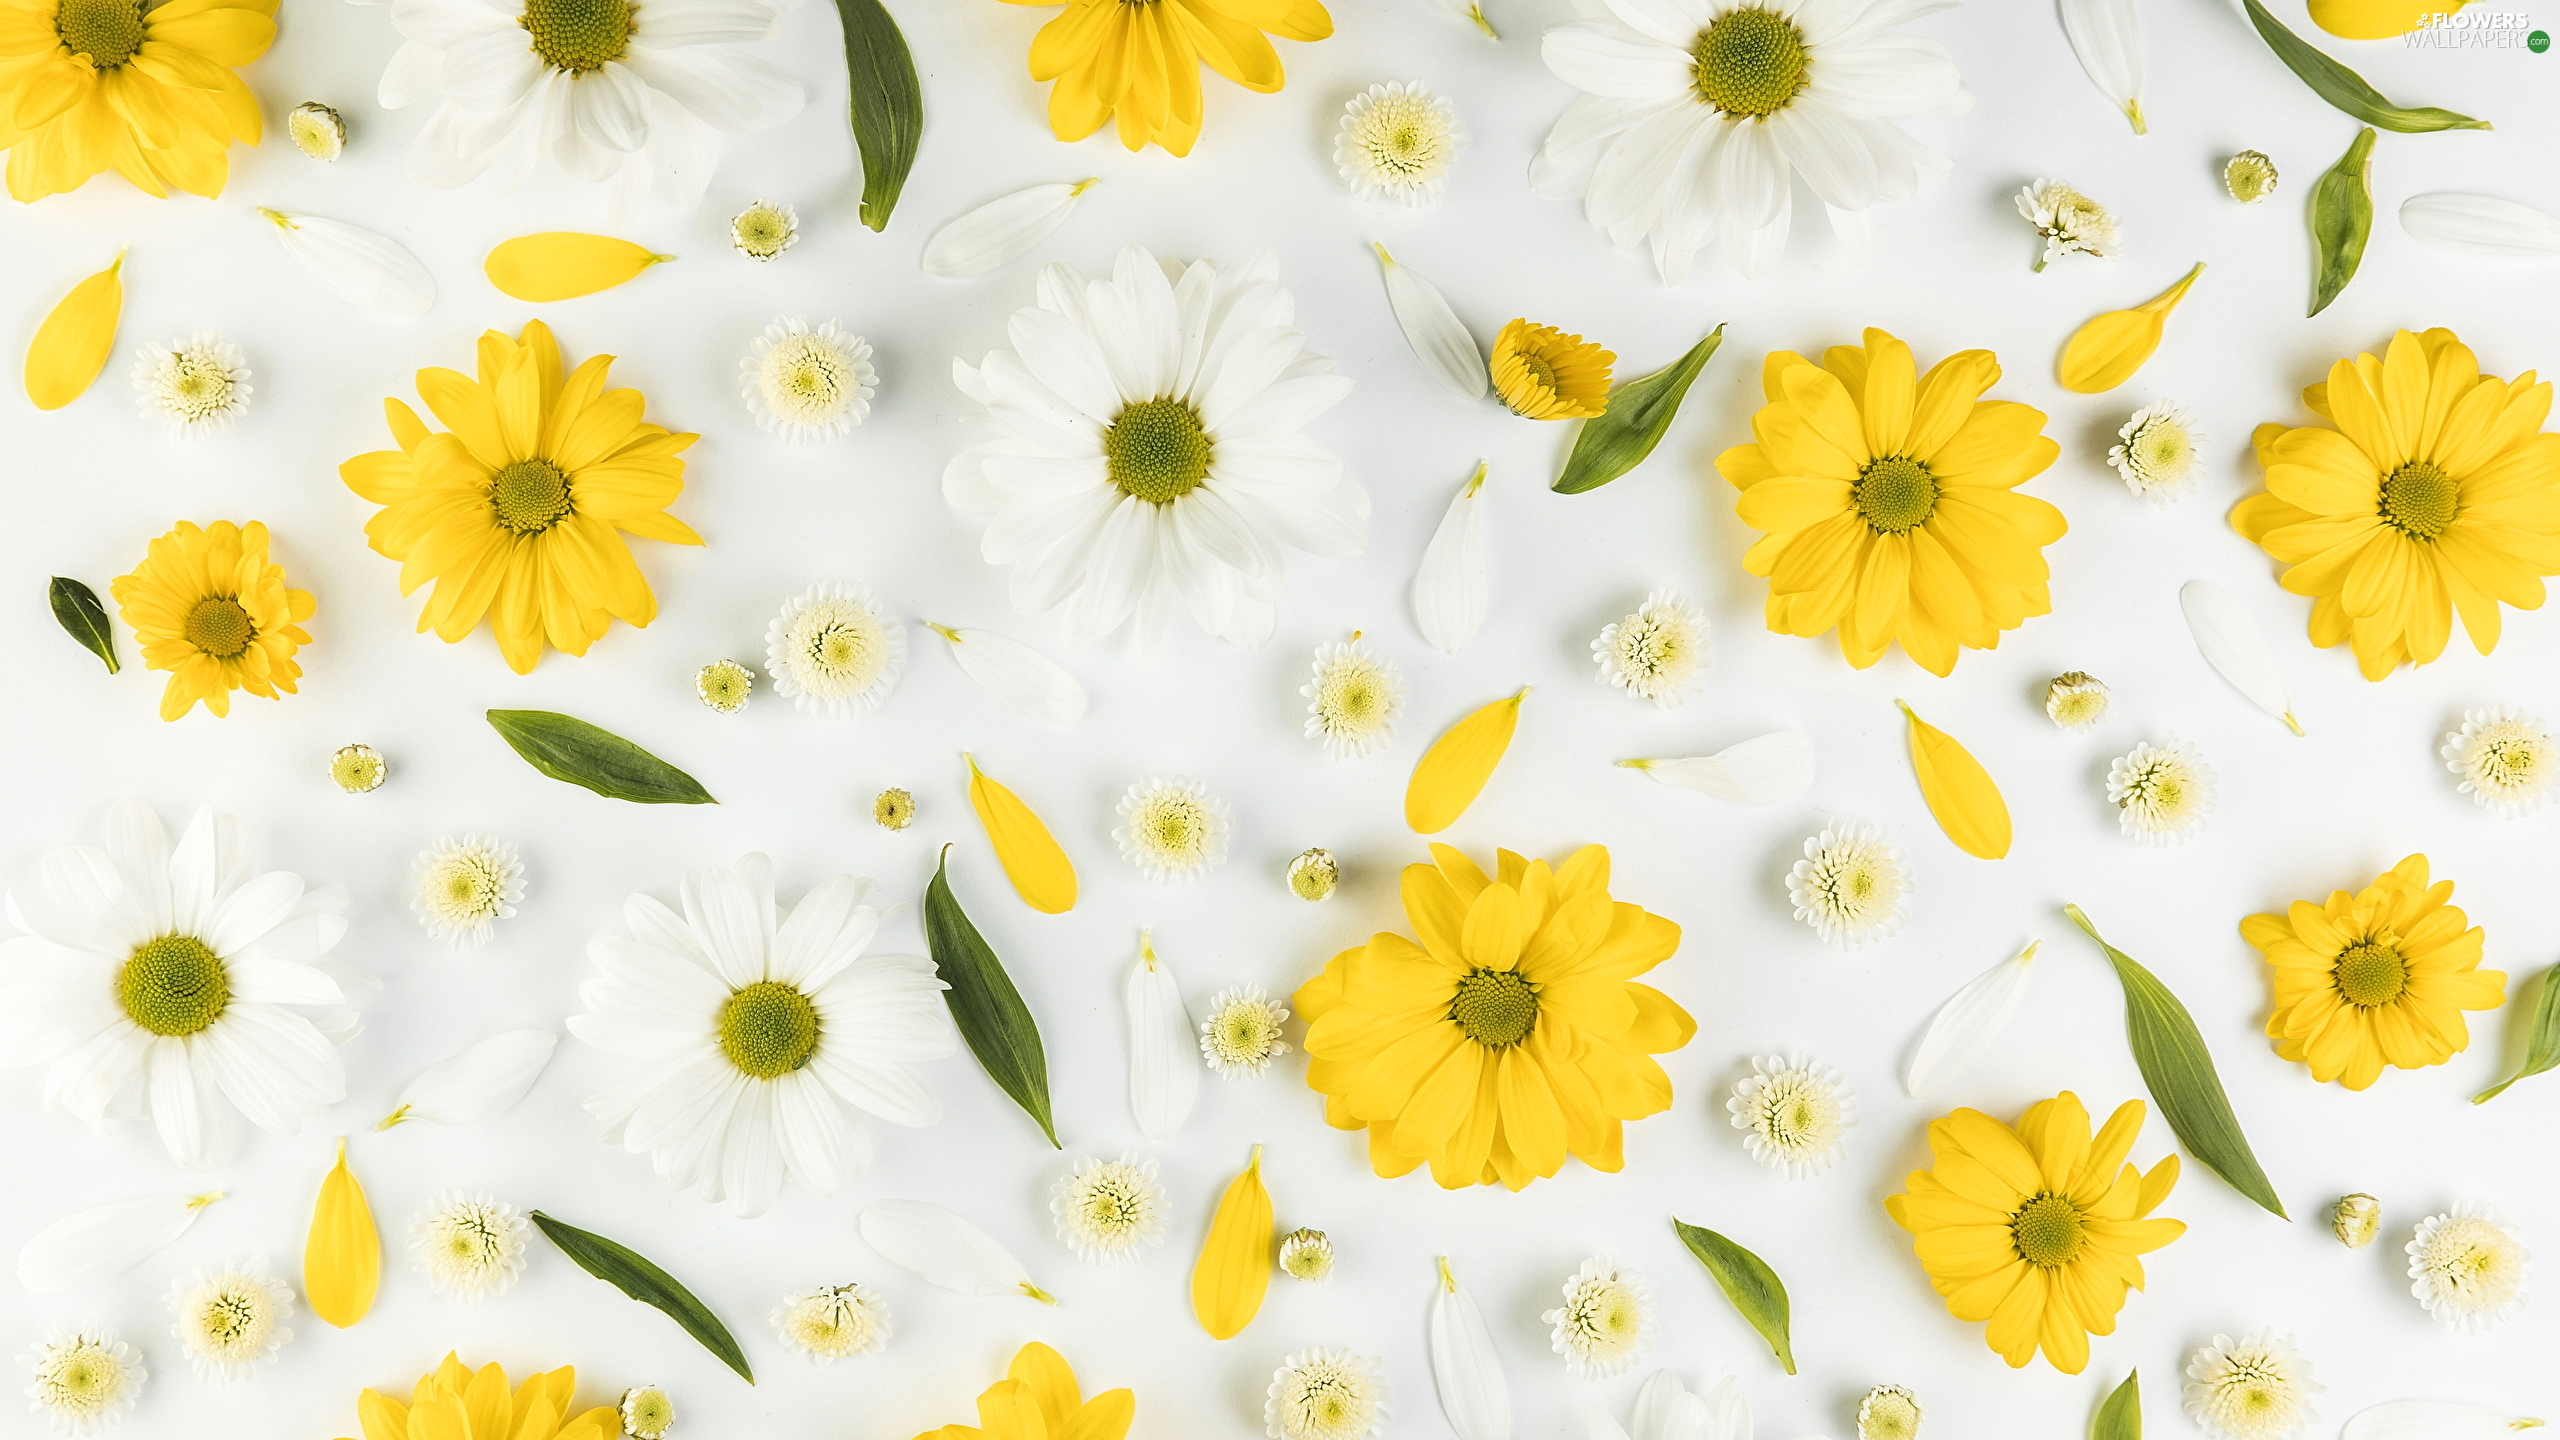 Yellow Chrysanthemums Flakes White Flowers Flowers Wallpapers 2560x1440